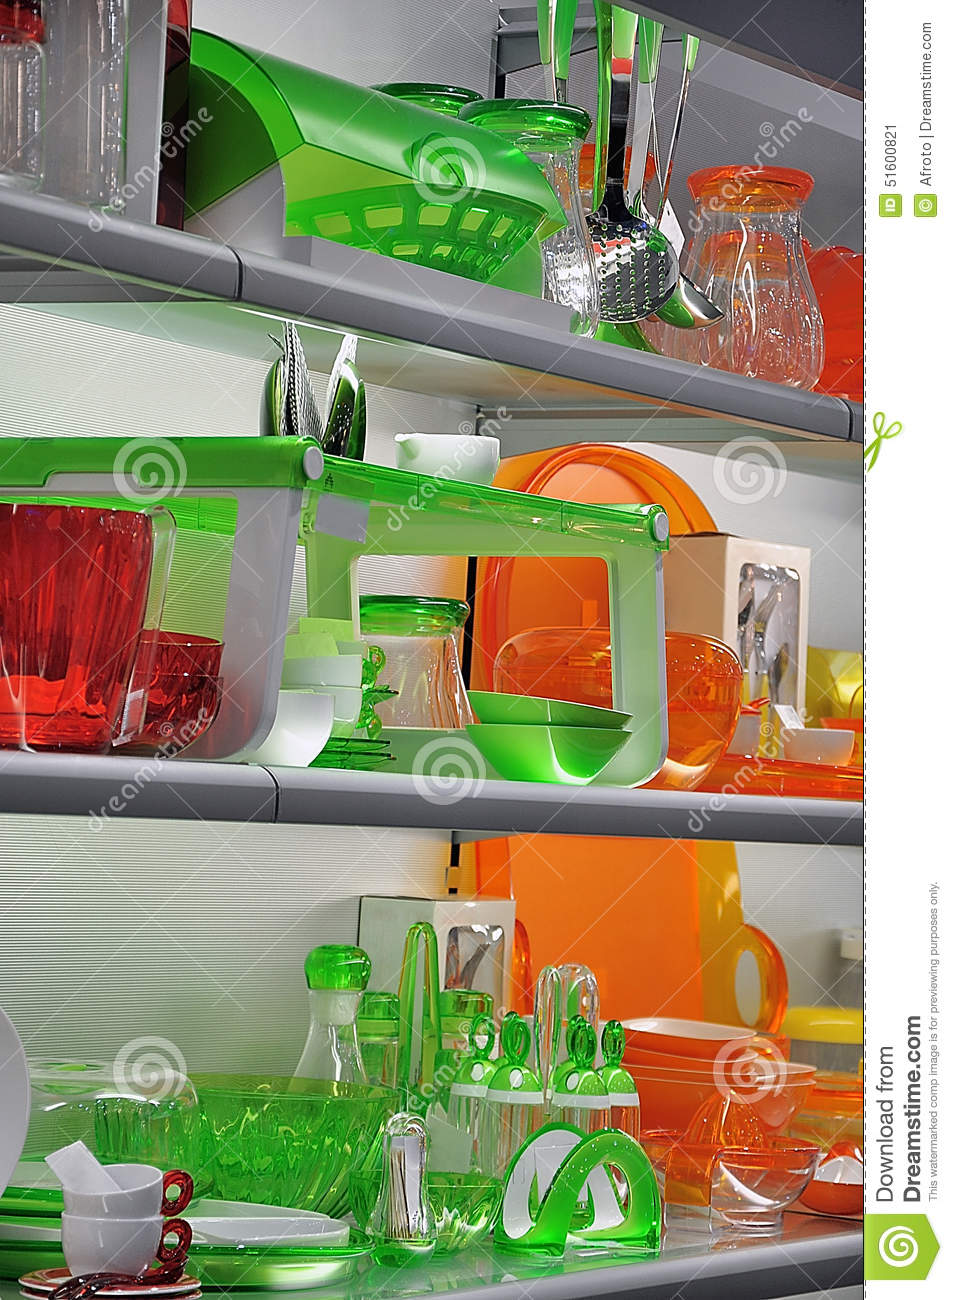 Colorful kitchenware stock image. Image of kitchen, glasses ...